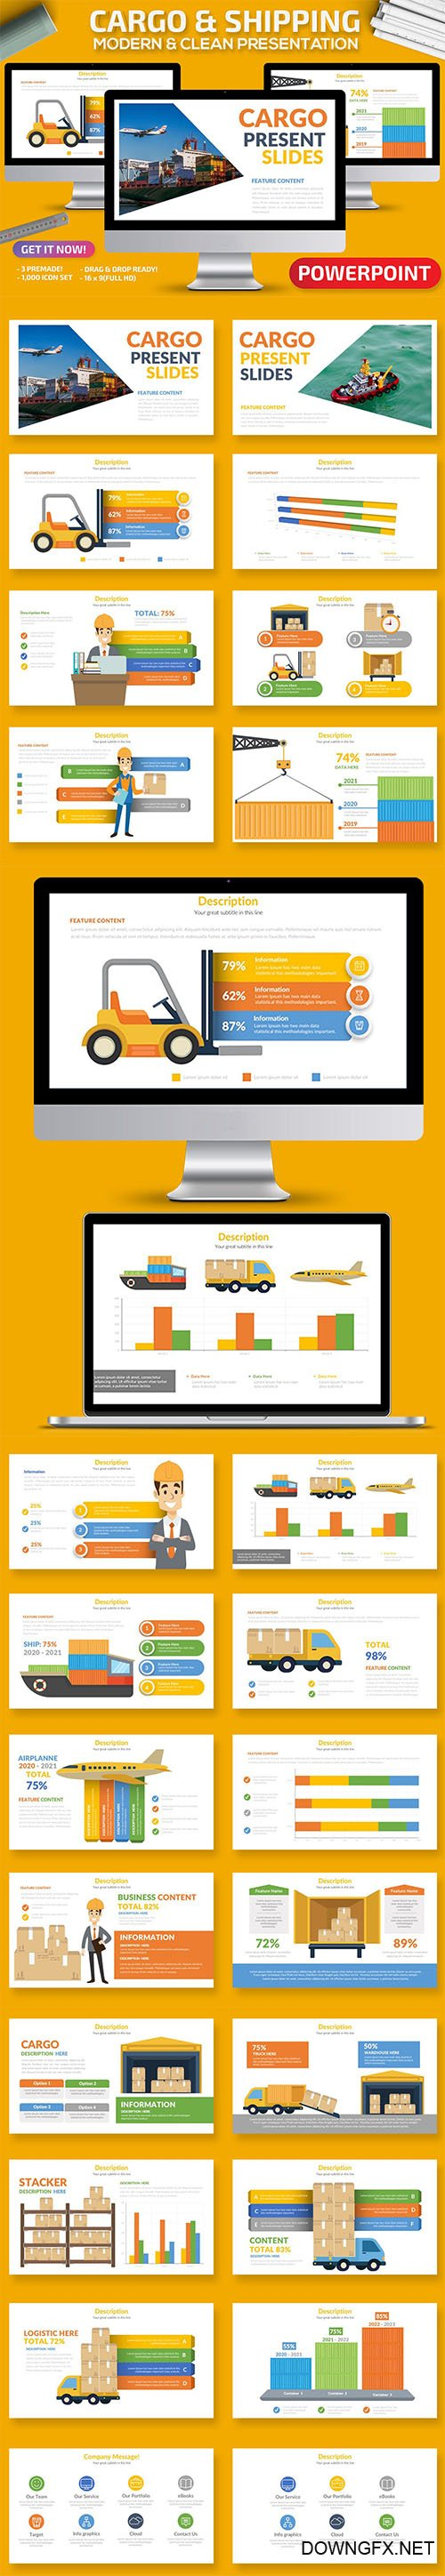 Cargo & Shipping Powerpoint and Keynote Presentation